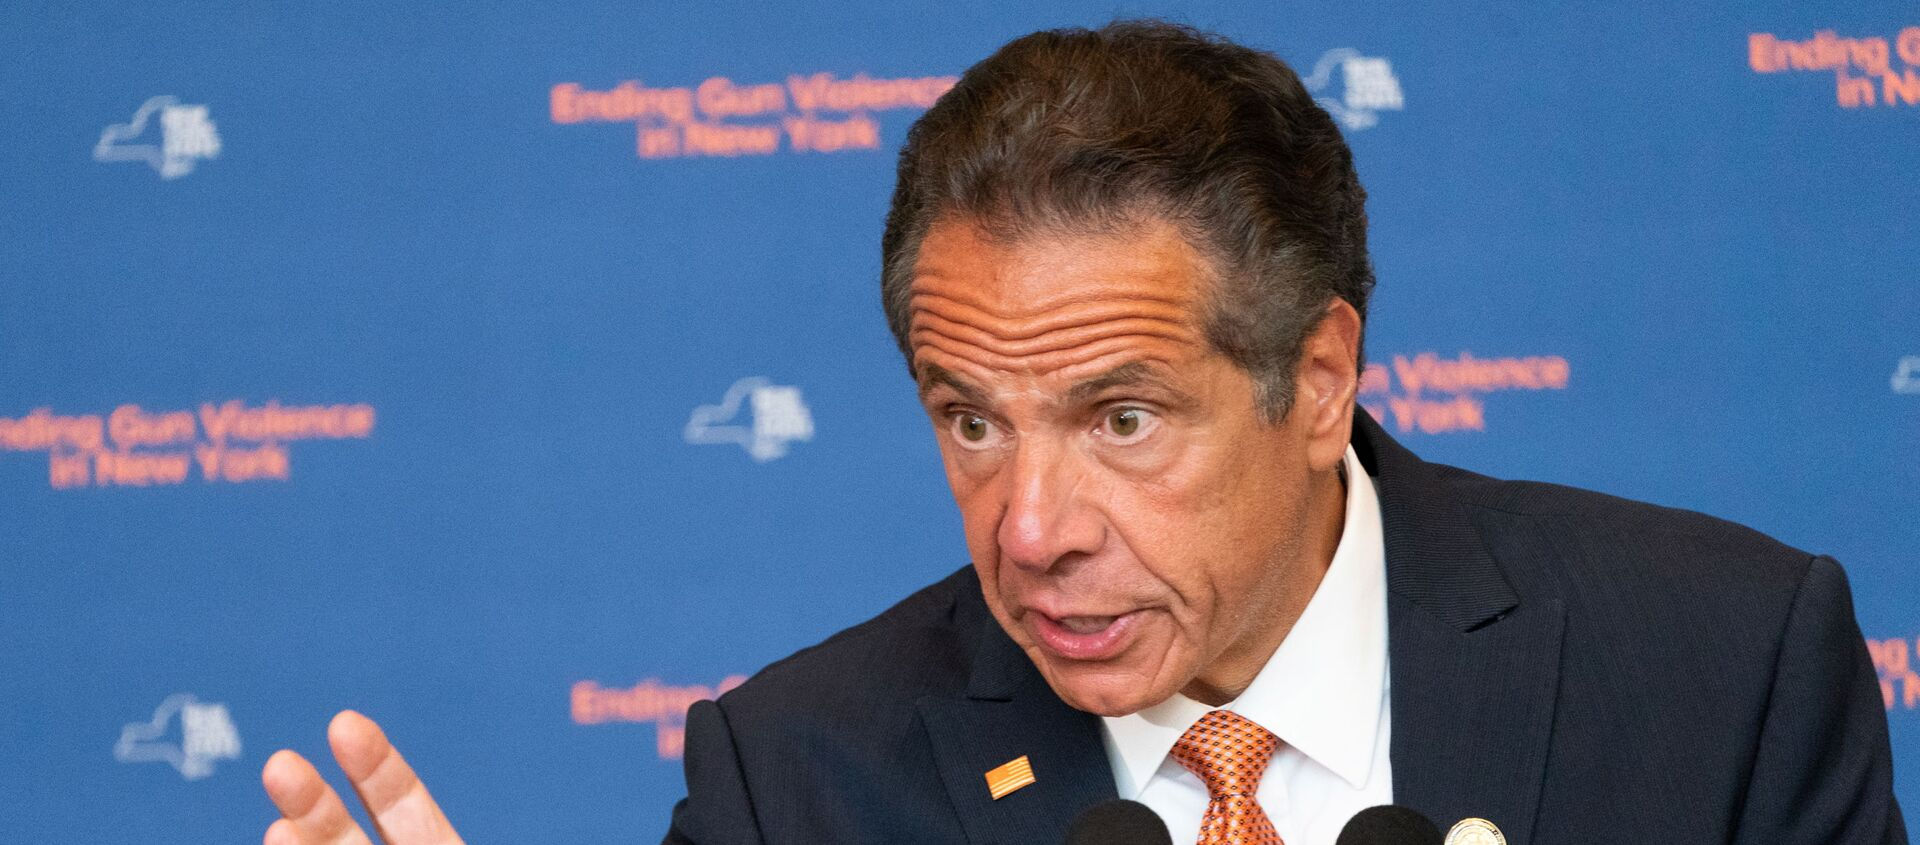 New York Governor Andrew Cuomo speaks during a news conference, to make an announcement that Gun Manufacturers are Liable for the harm their products cause, in New York City, New York, U.S., July 6, 2021 - Sputnik International, 1920, 03.08.2021